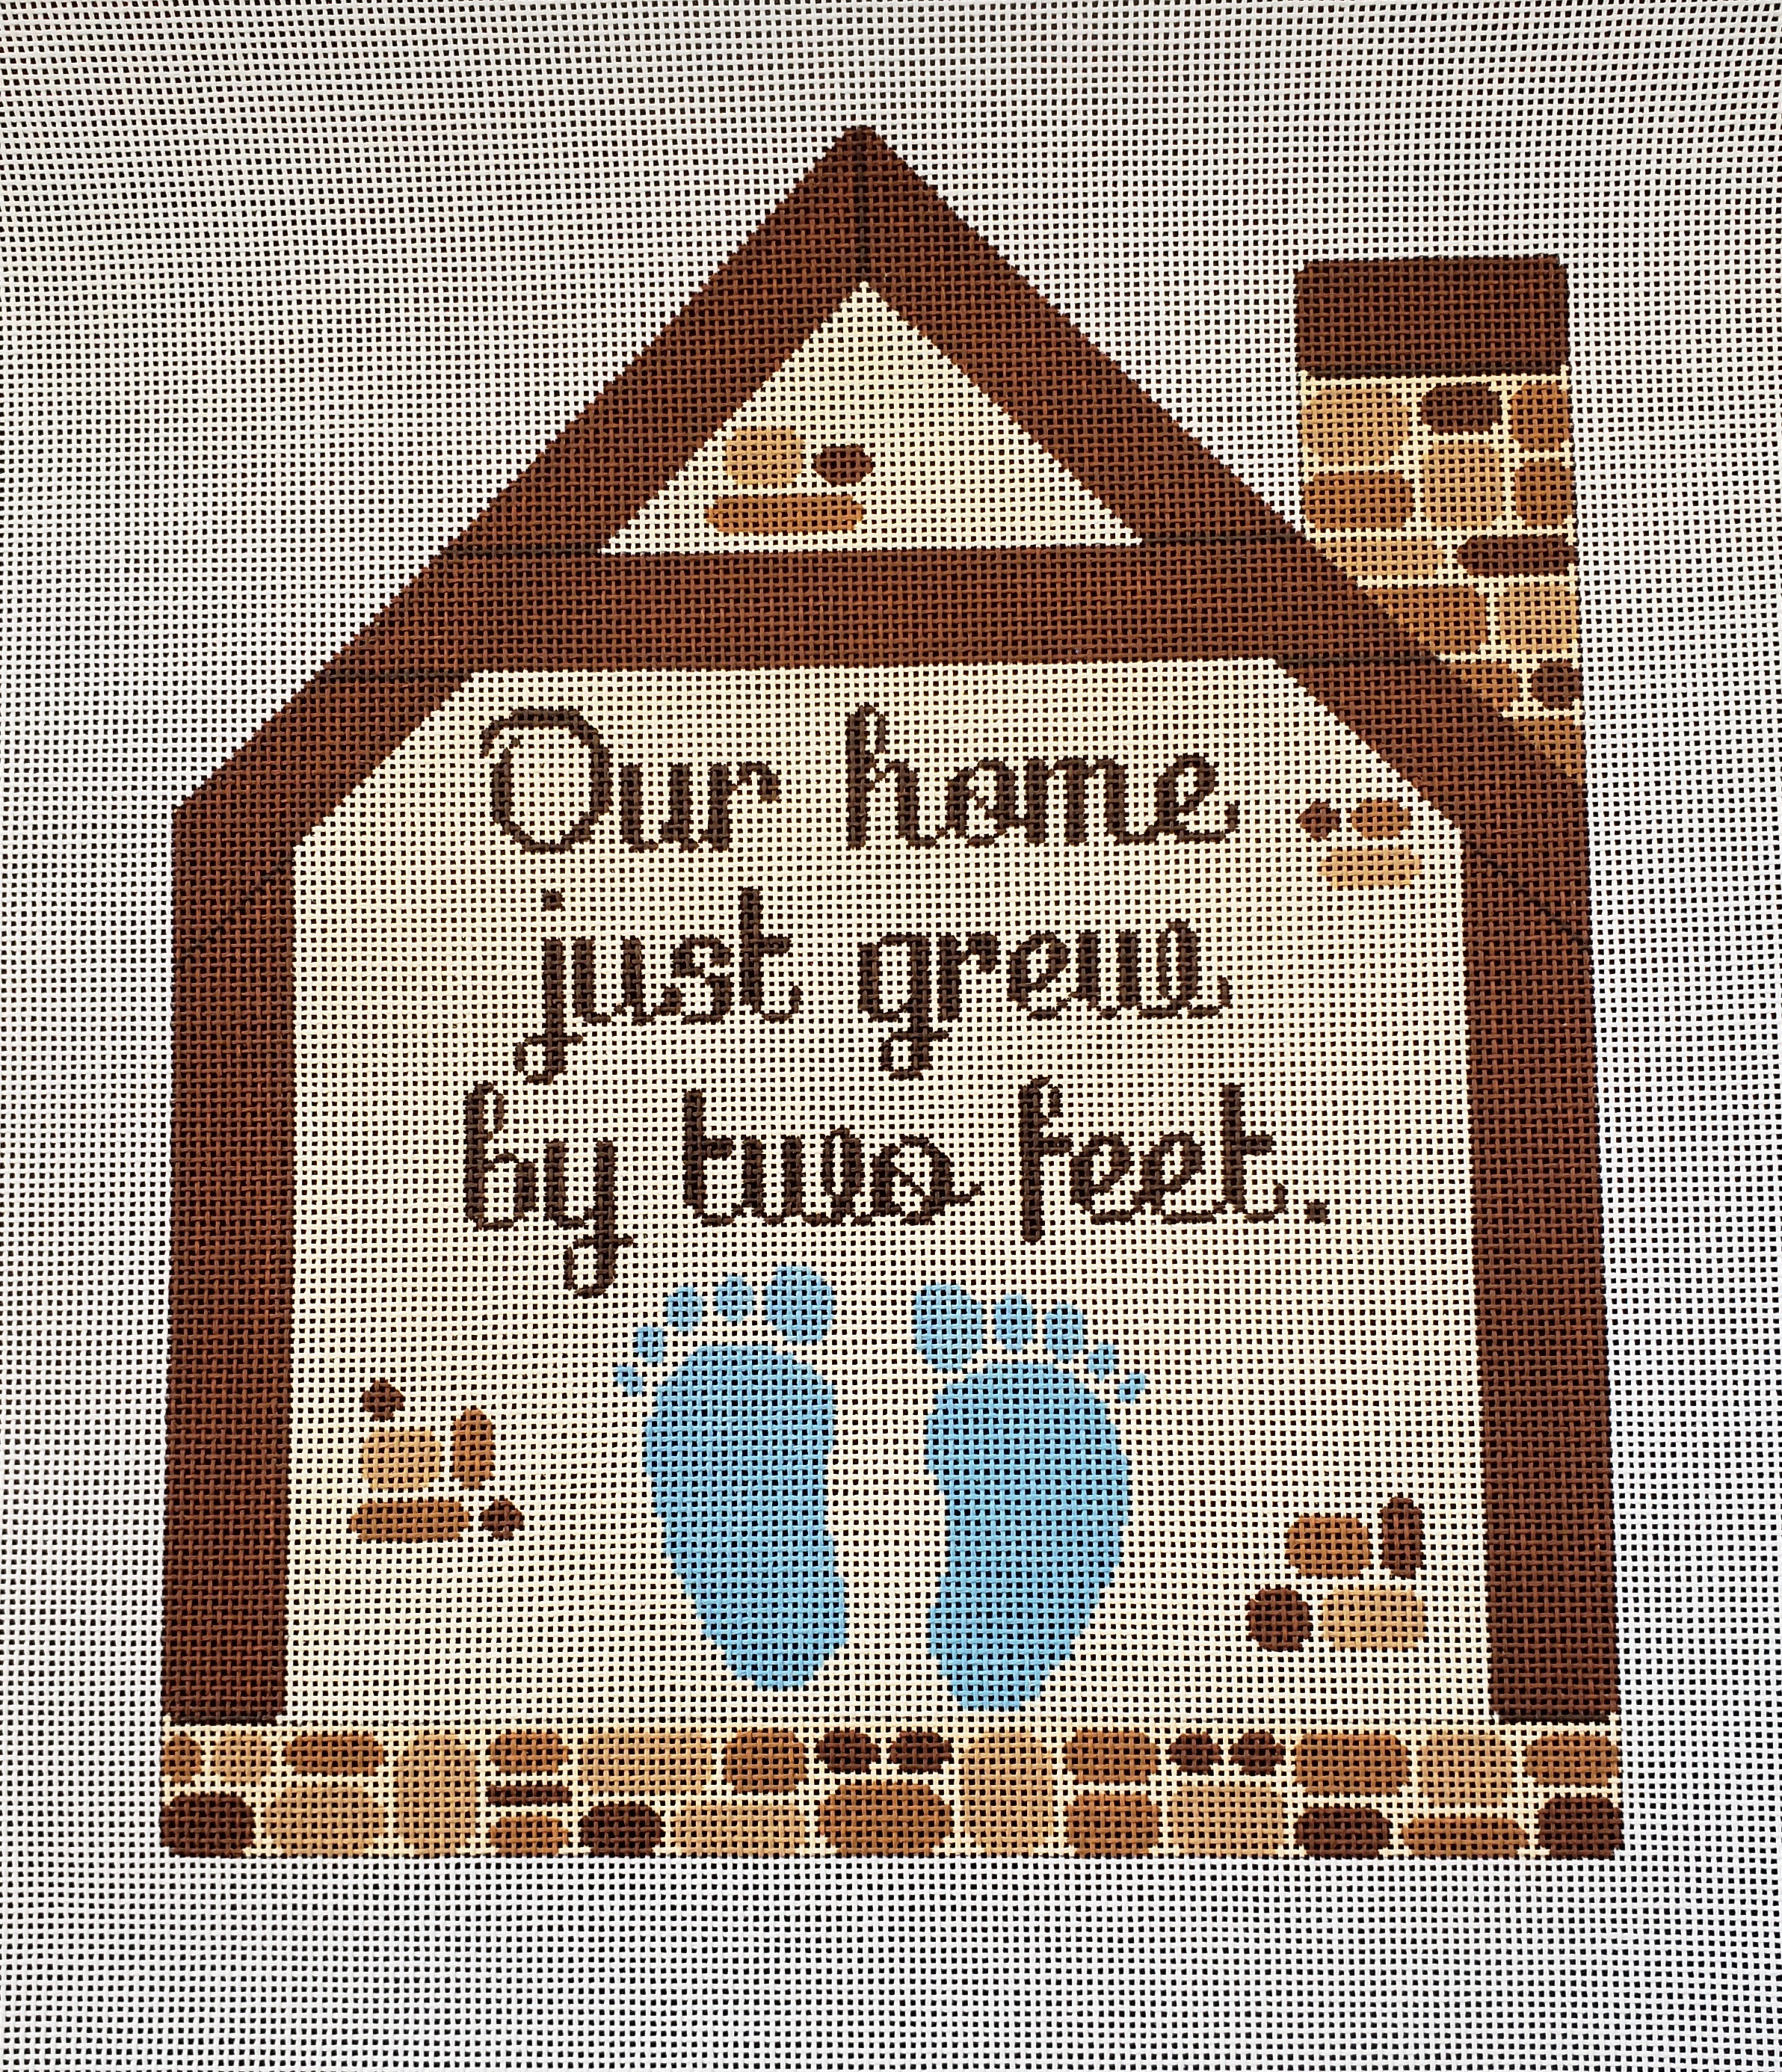 Our Home Just Grew by Two Feet - Boy